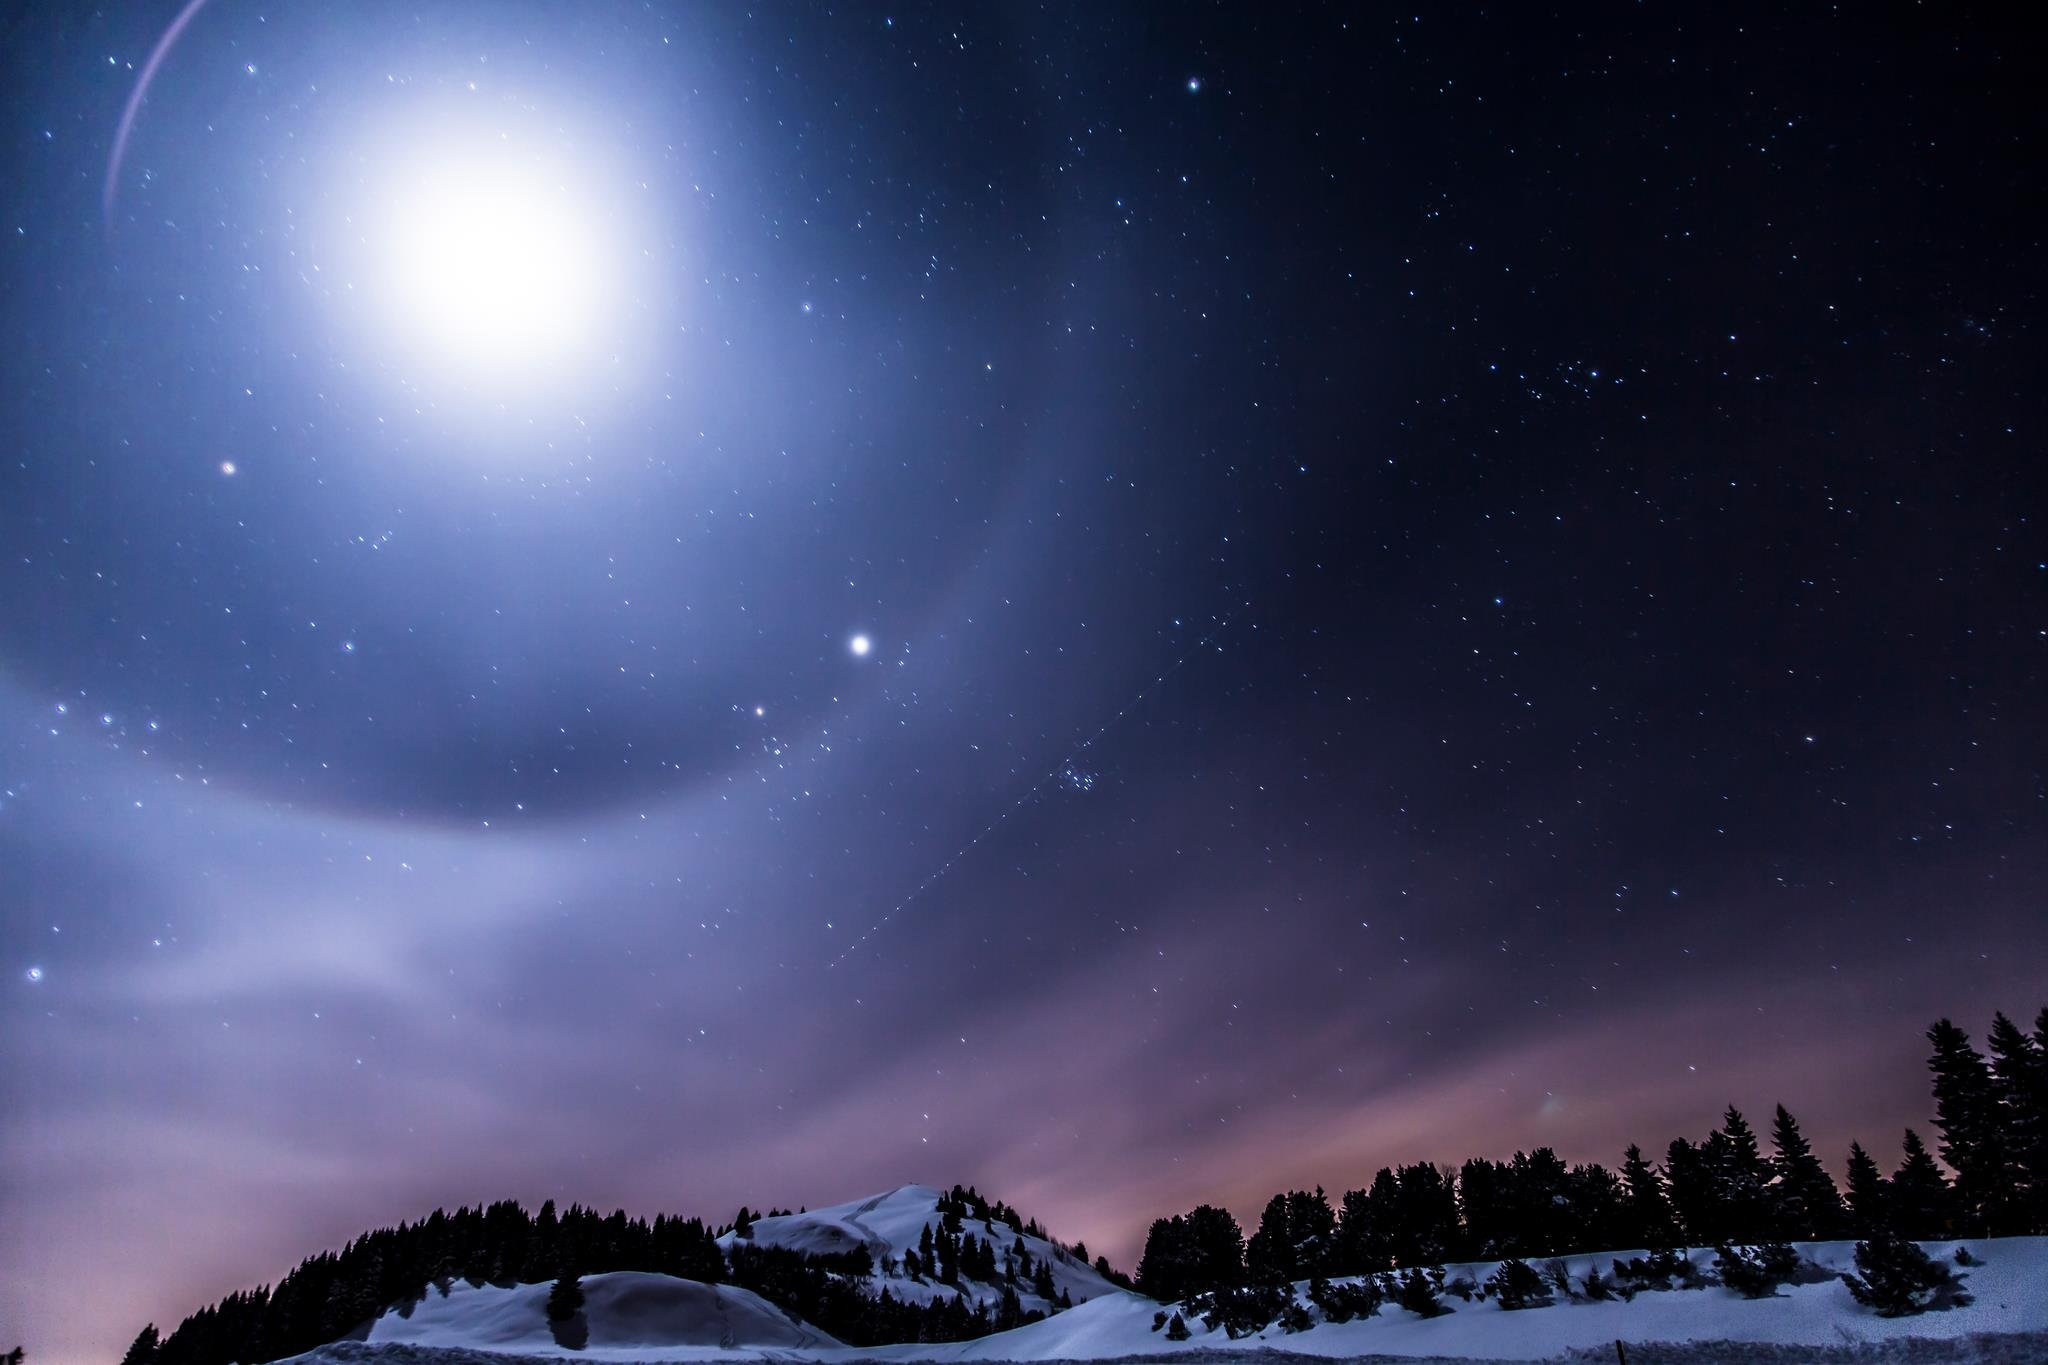 Anime Snow Wallpaper Scenic View Of Mountains Against Sky At Night 183 Free Stock